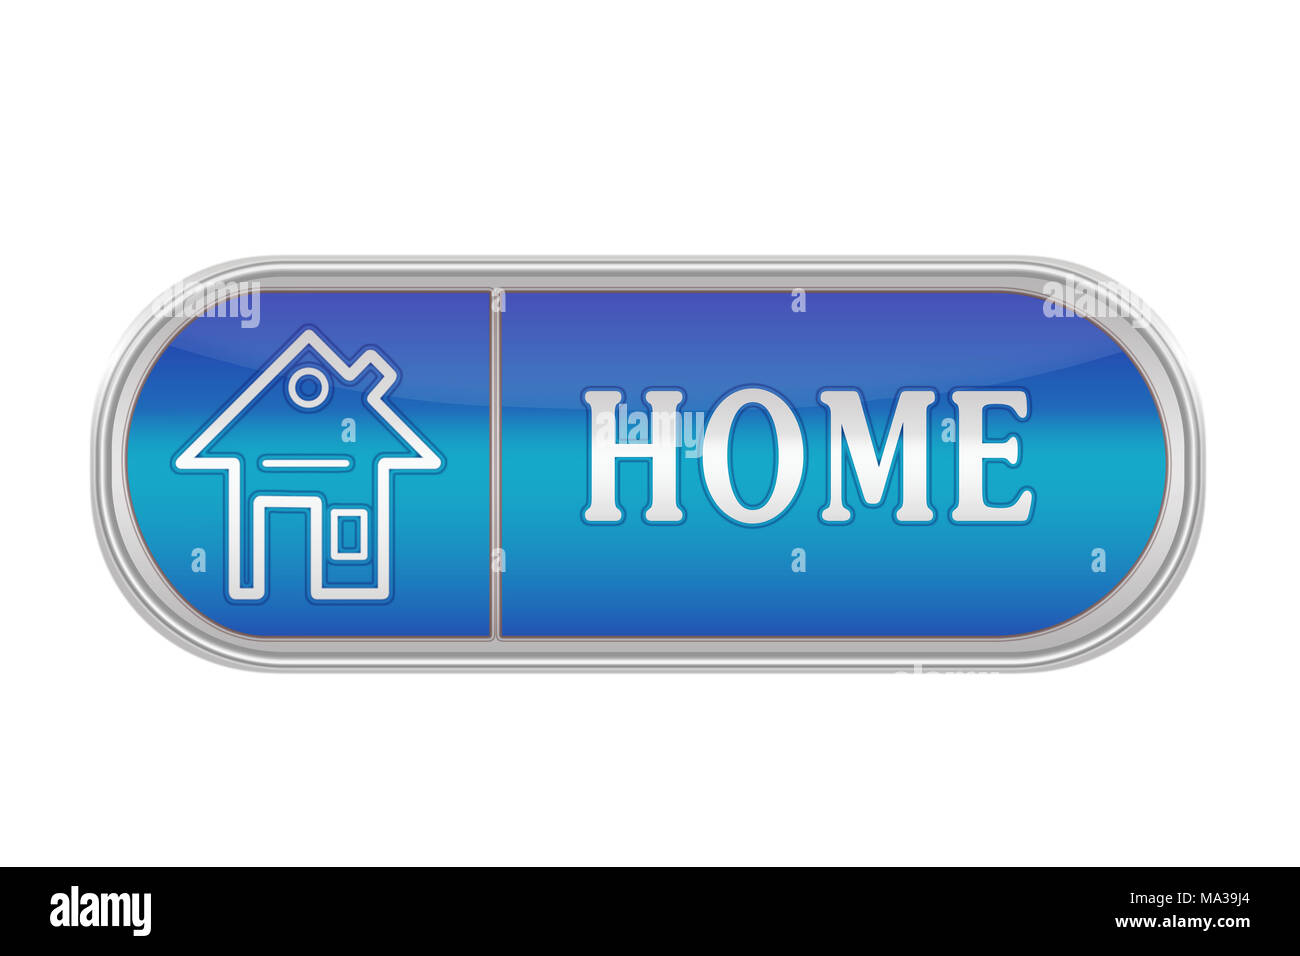 Oblong volume button of blue color with the icon and the inscription 'HOME', white background - Stock Image